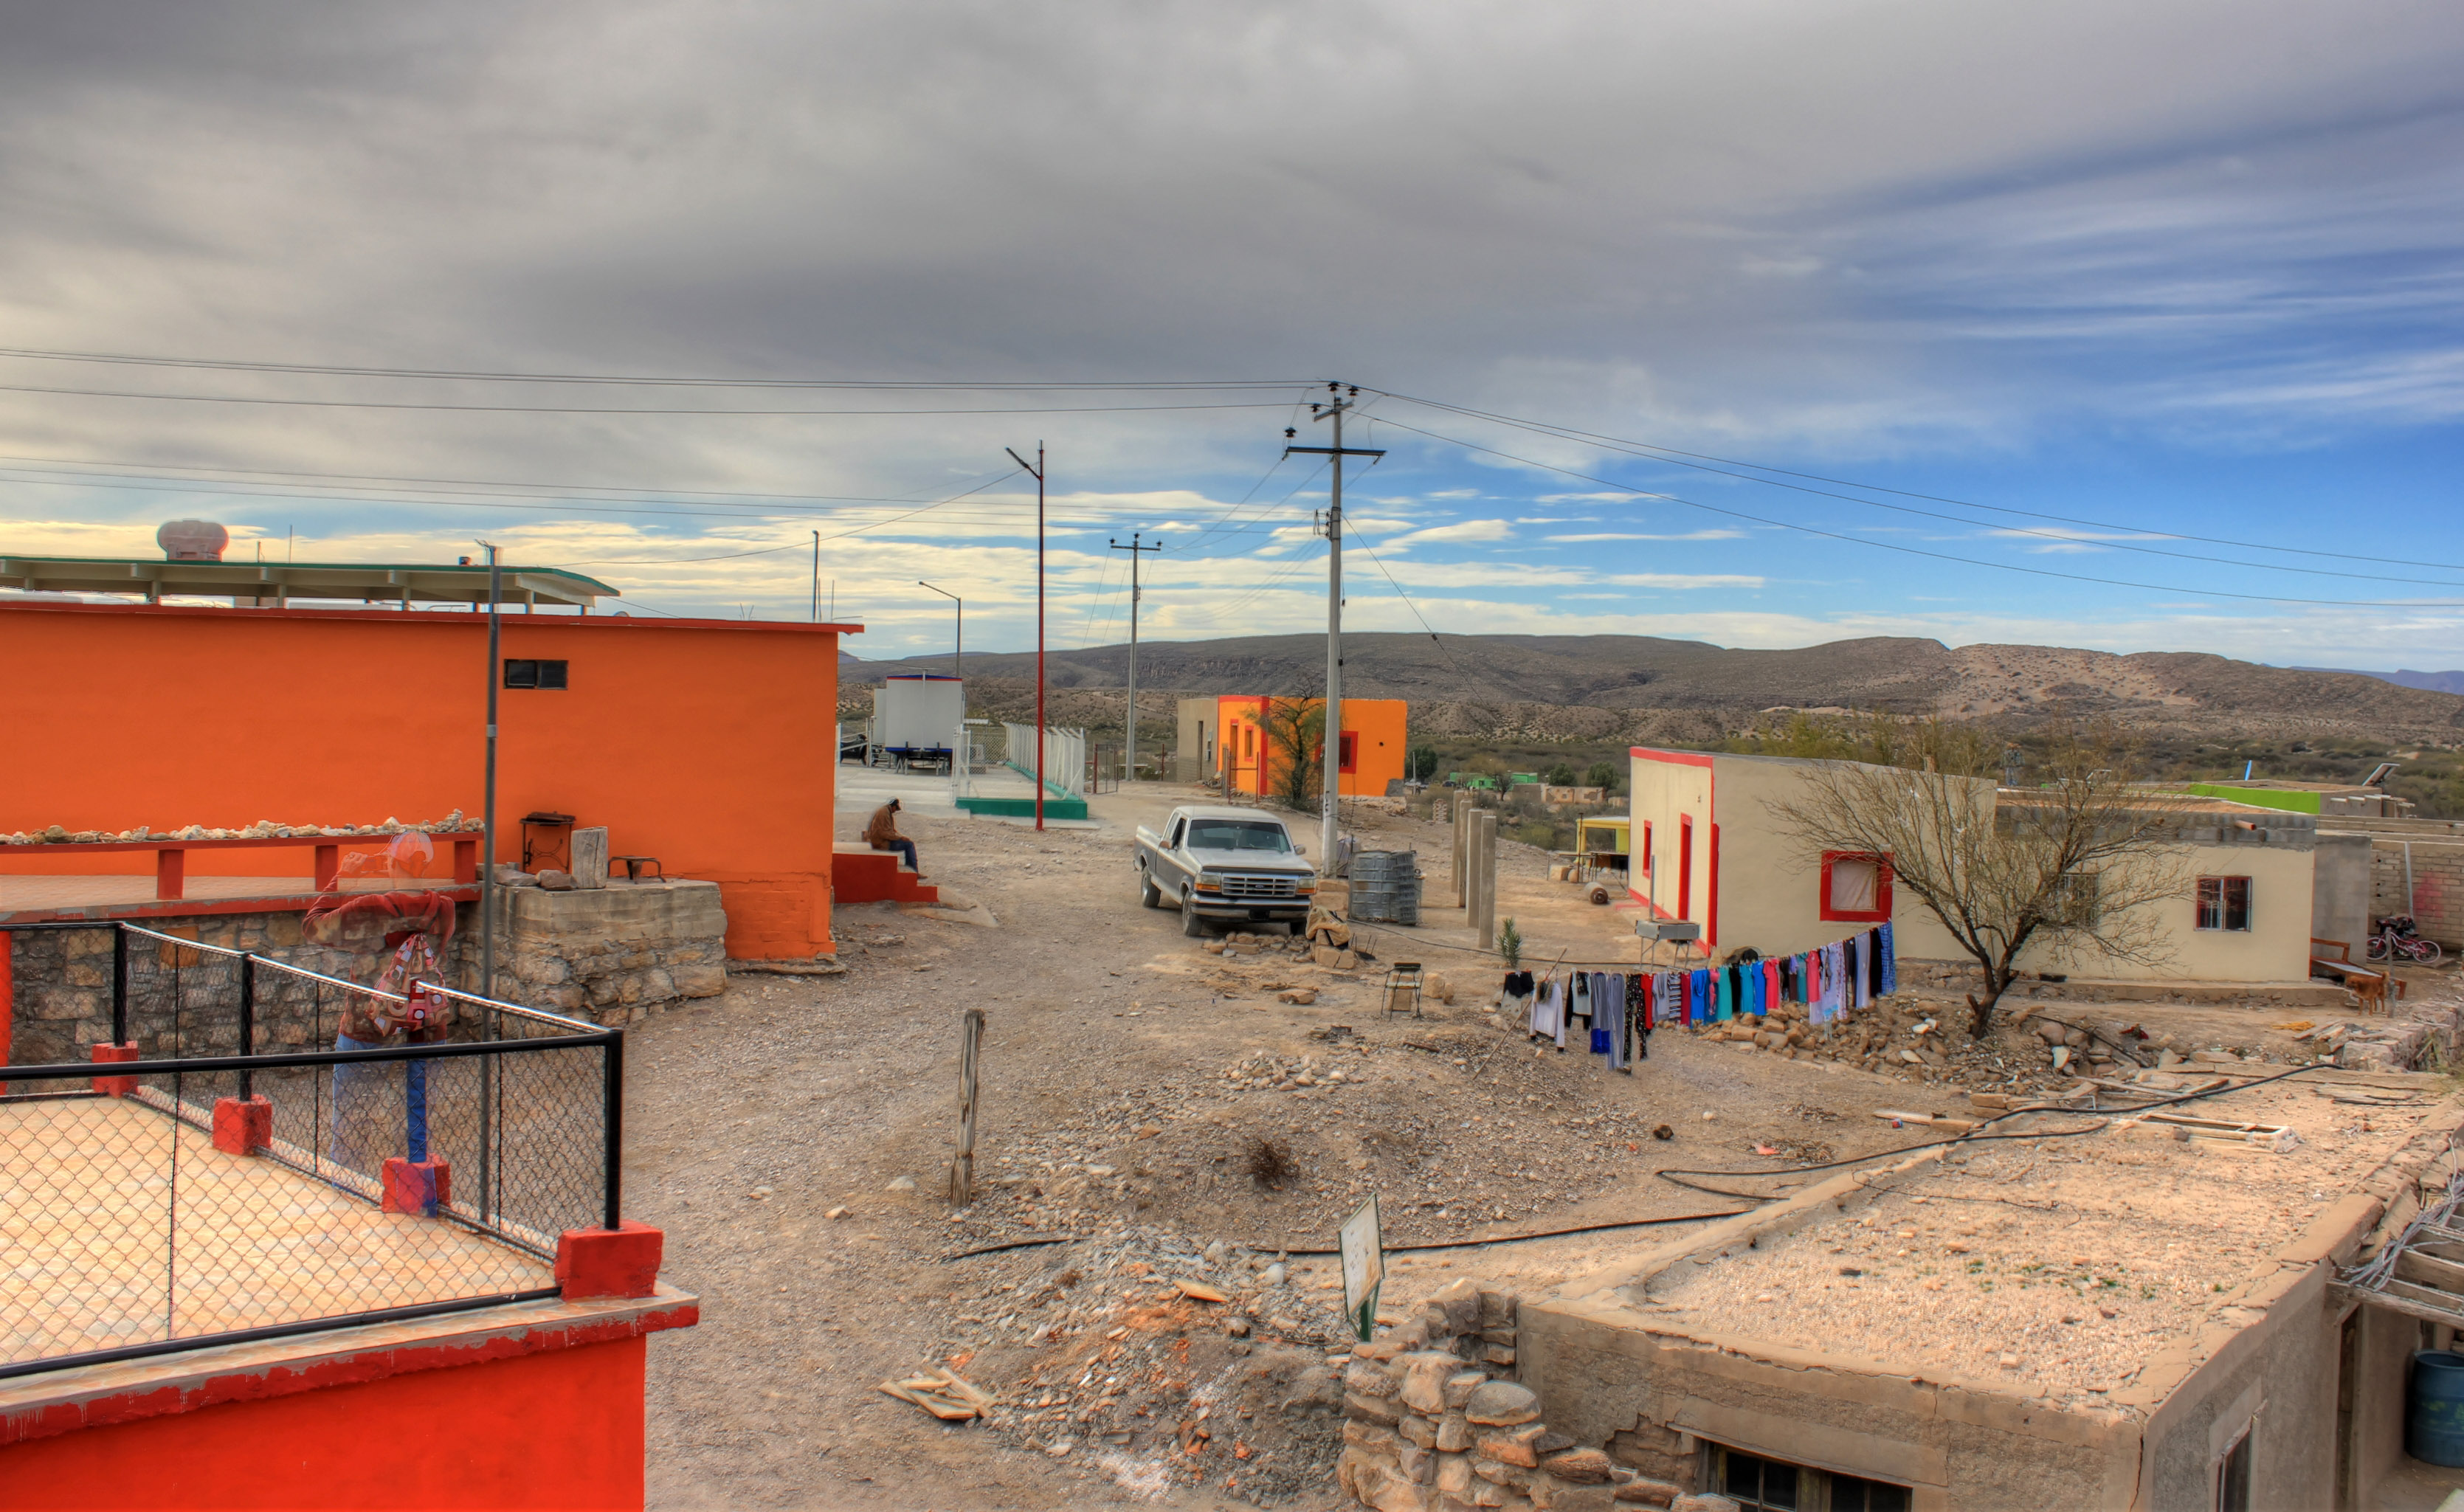 Houses in the town at Boquilla Del Carmen, Coahuila, Mexico - Free ...